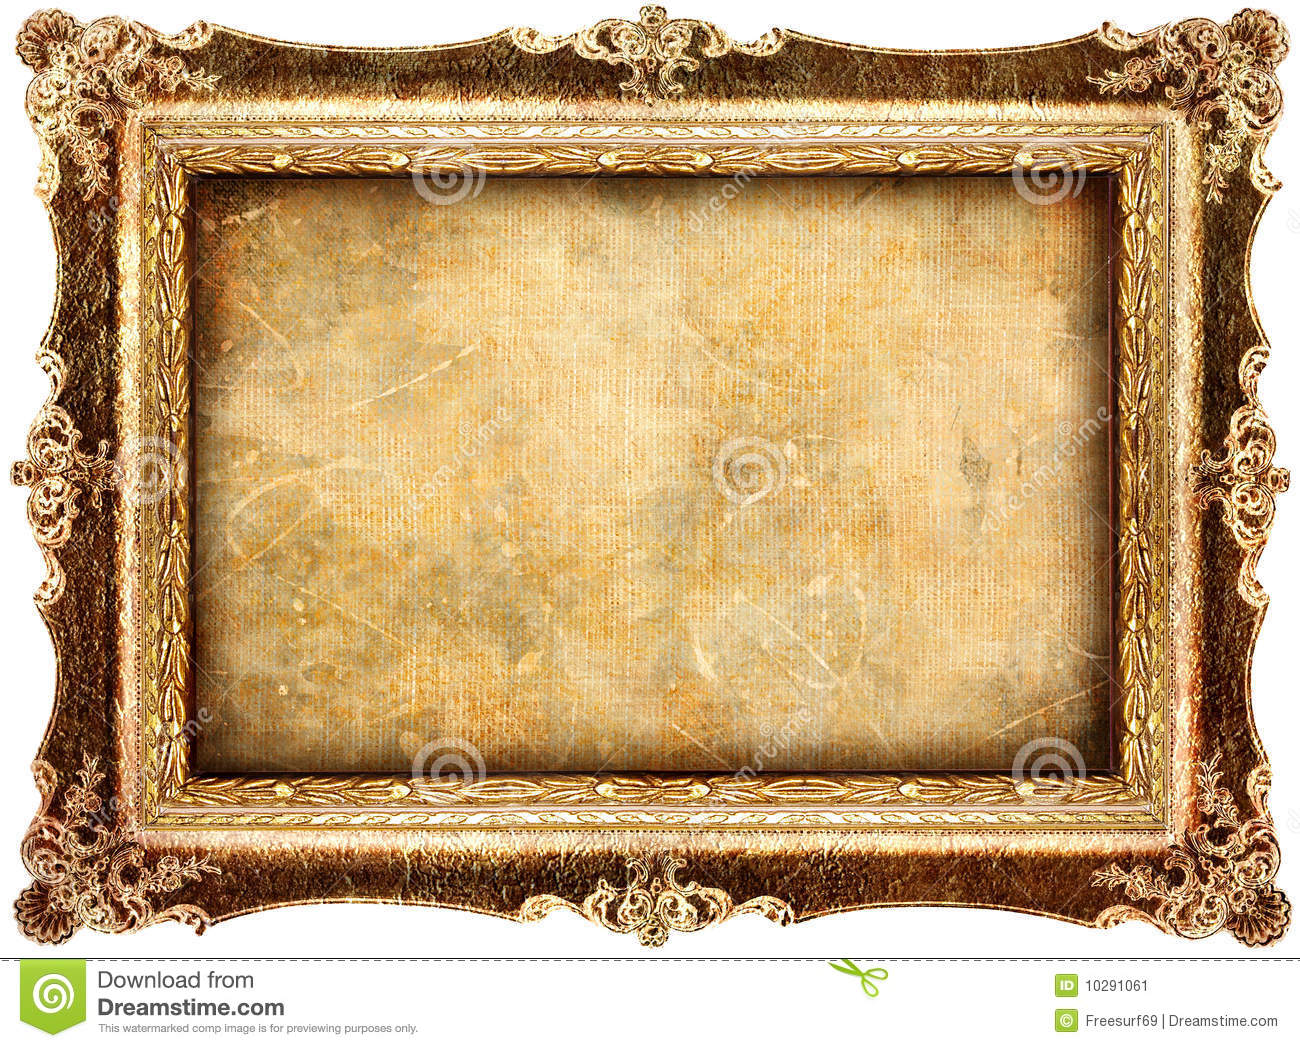 antique frame stock image image of gold handmade background 10291061. Black Bedroom Furniture Sets. Home Design Ideas